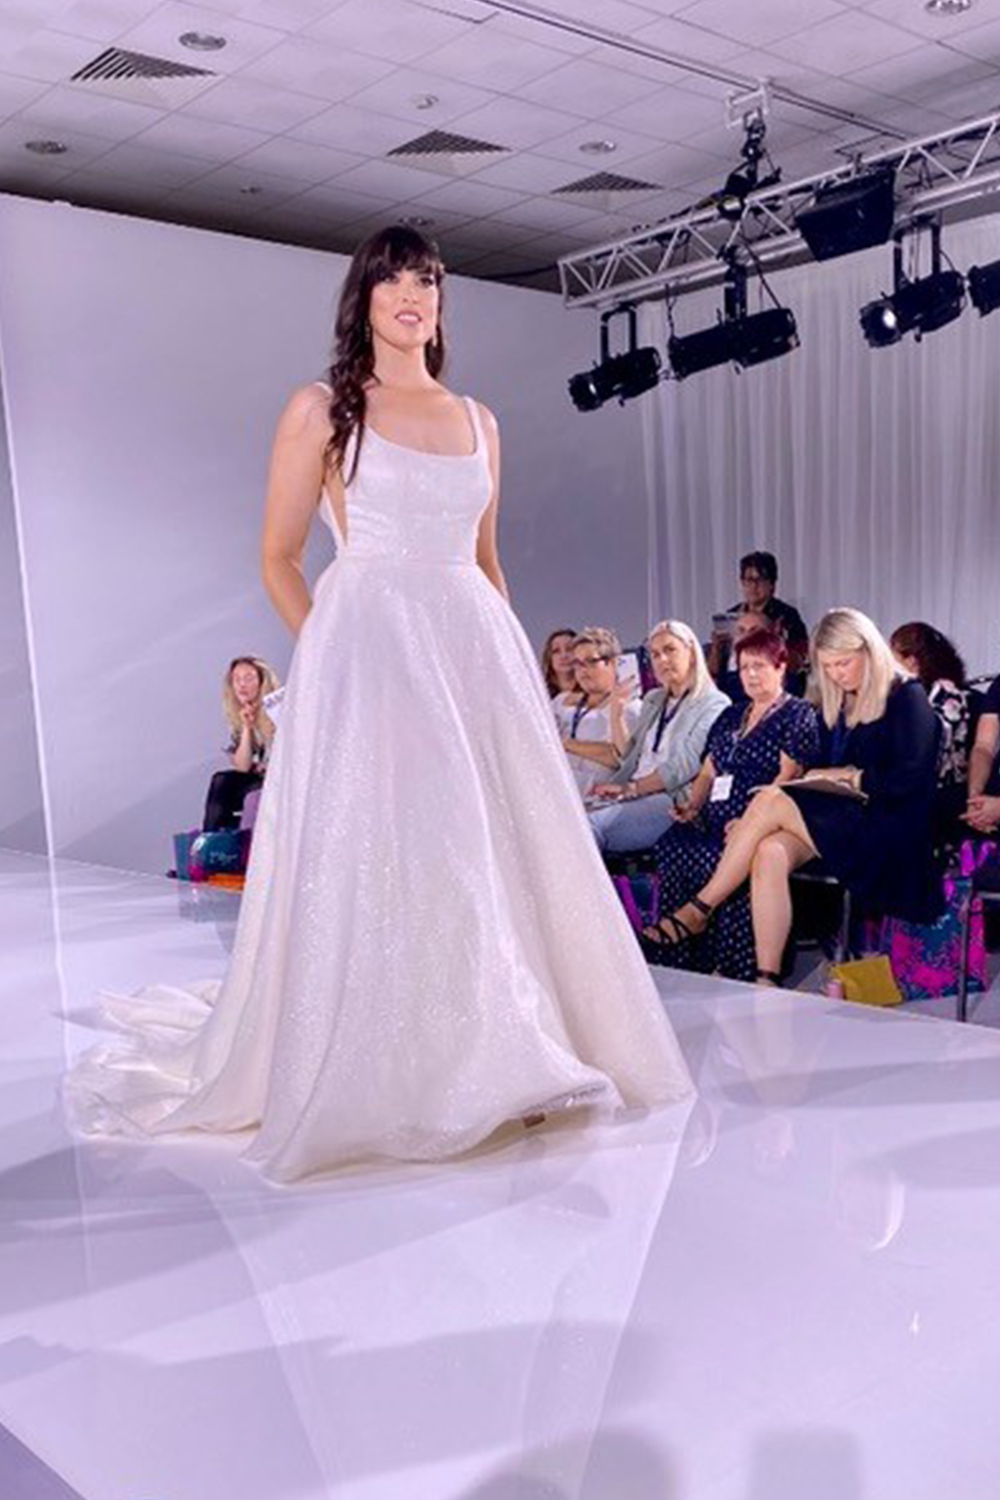 scoop neck dress from Opus Couture - Harrogate Bridal Show